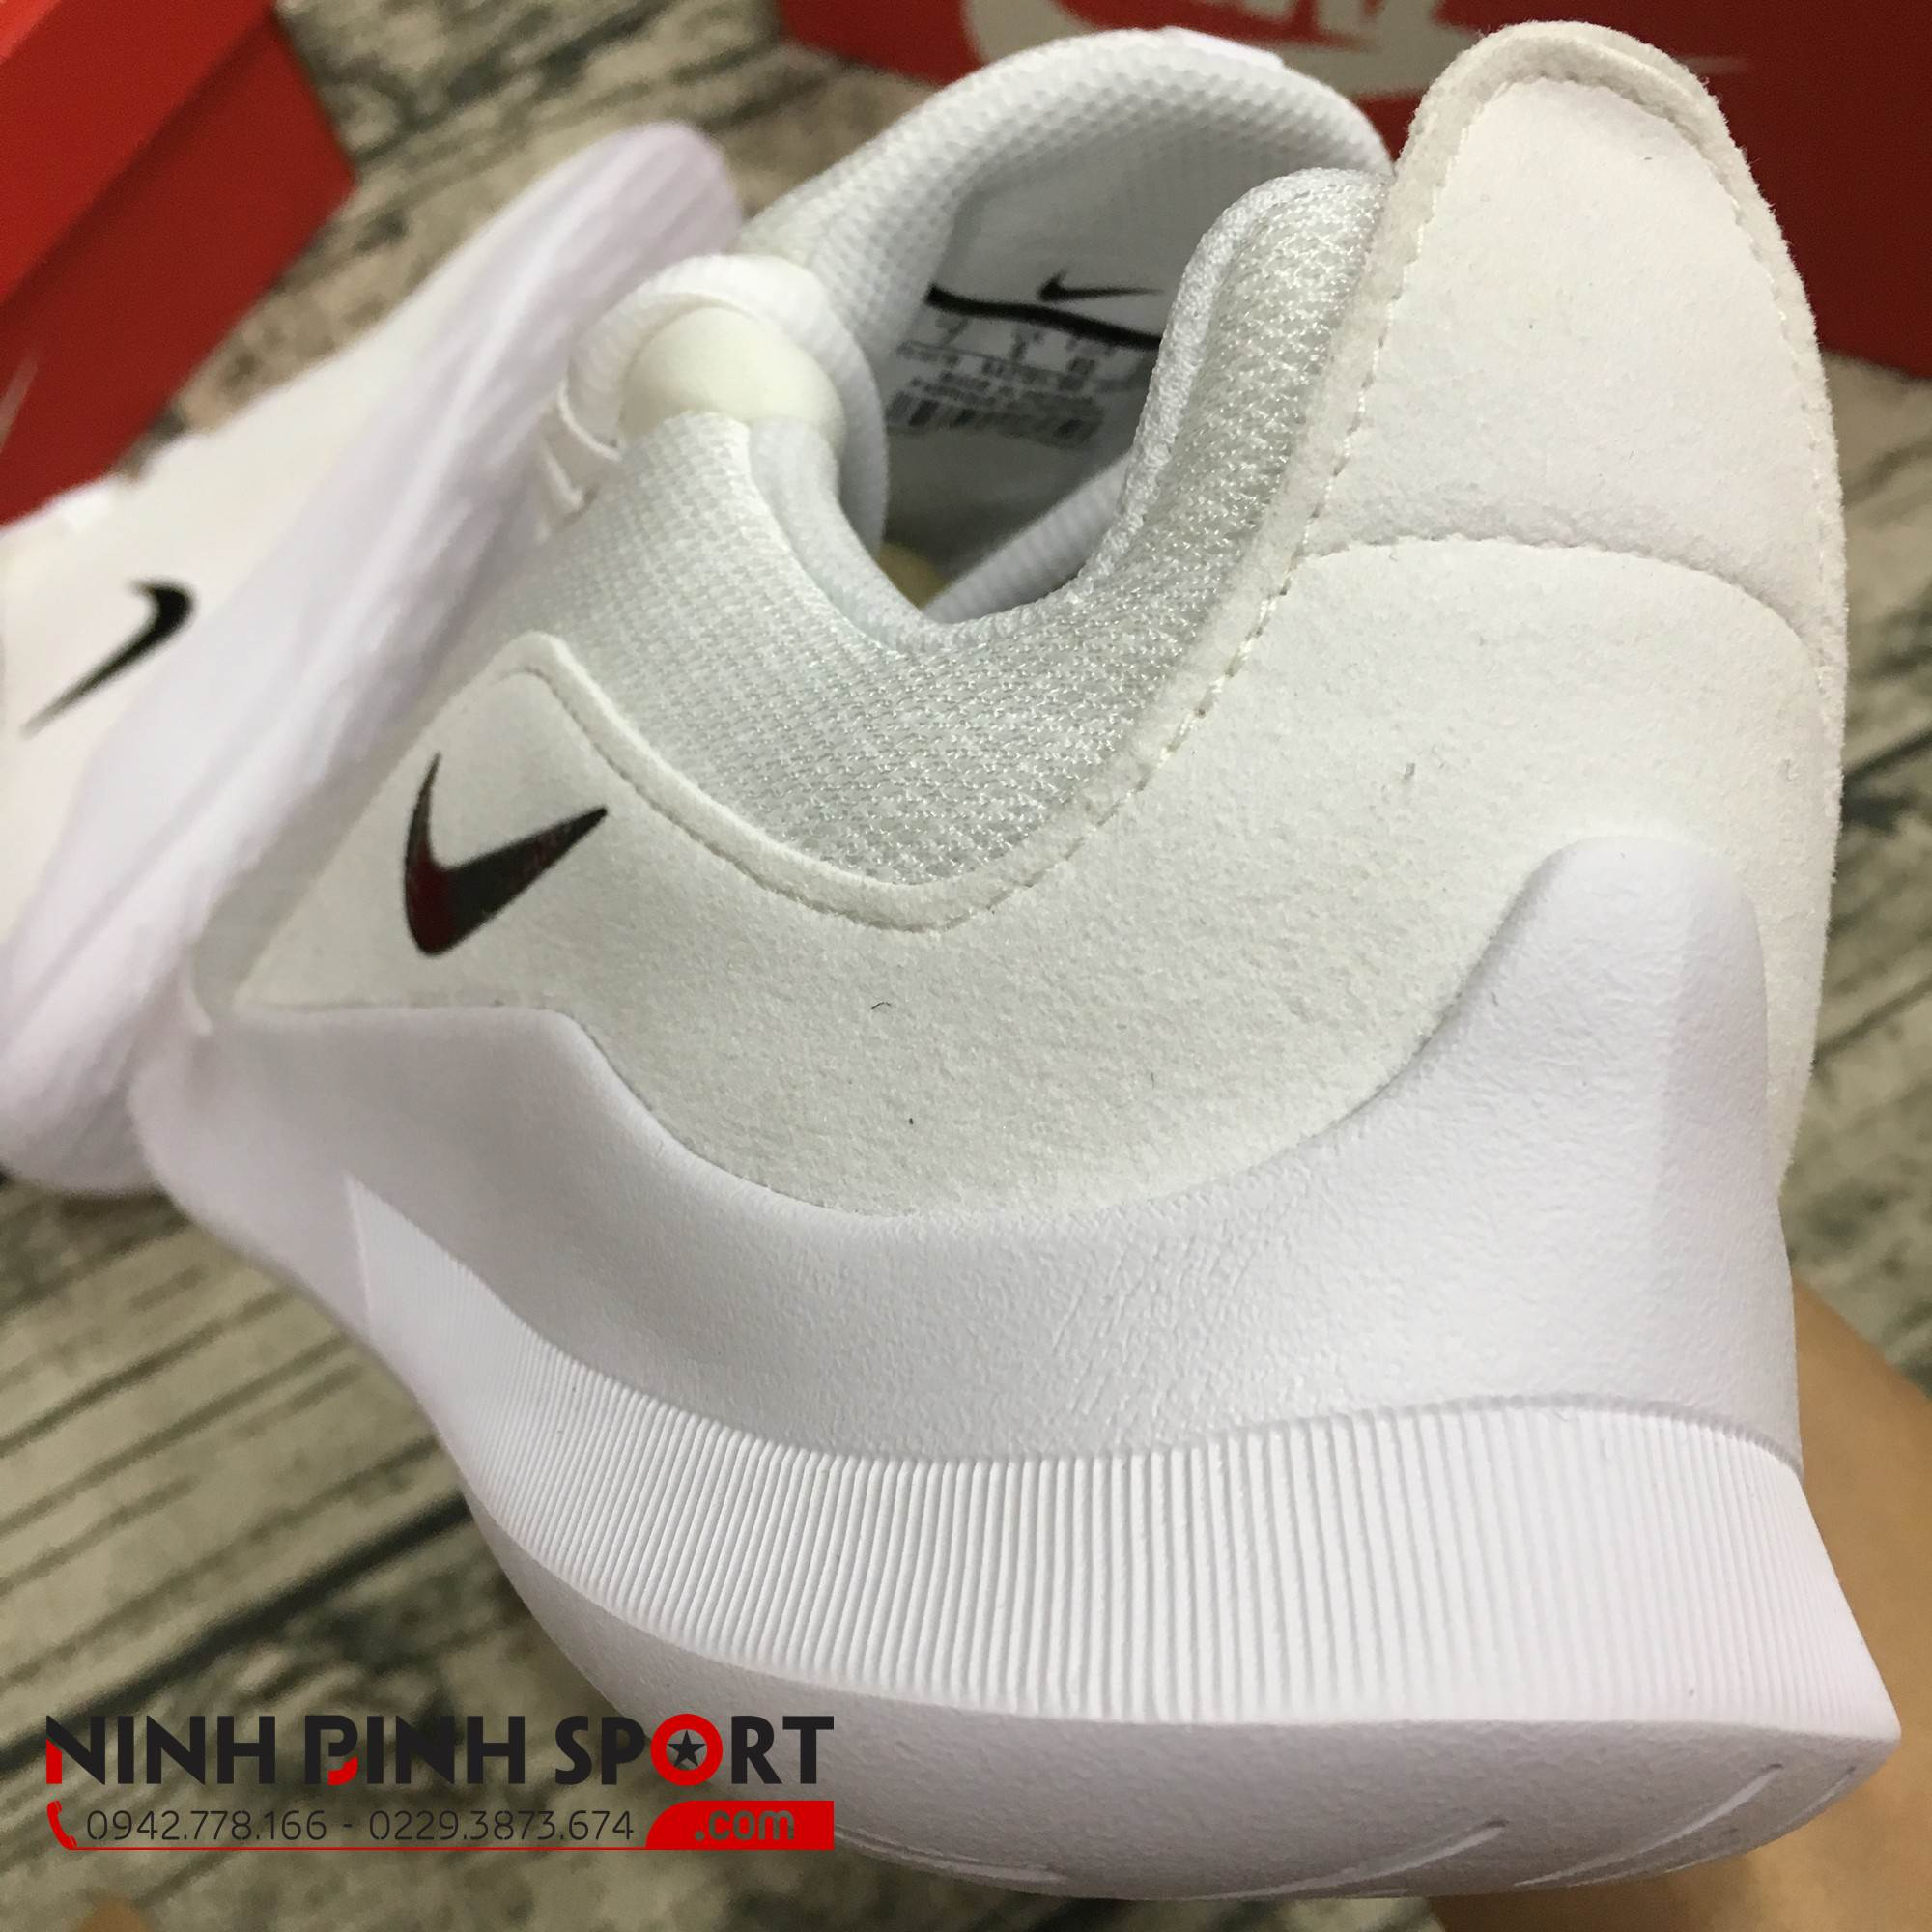 Giày thể thao nam Nike Viale Sneakers AA2181-100